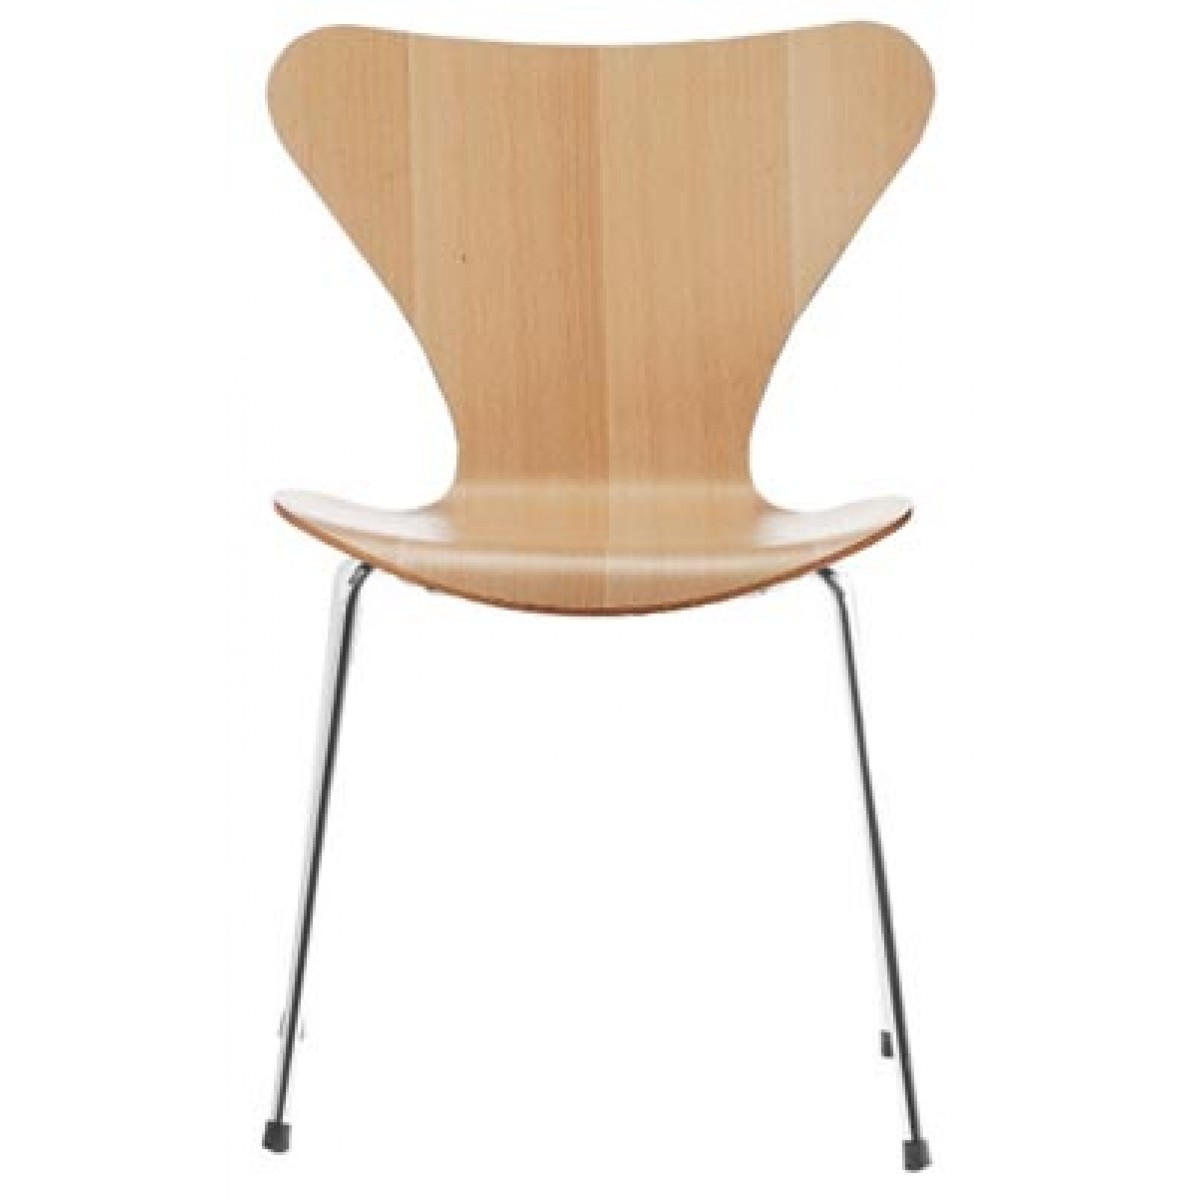 Arne jacobsen style series 7 chair for Jacobsen chair